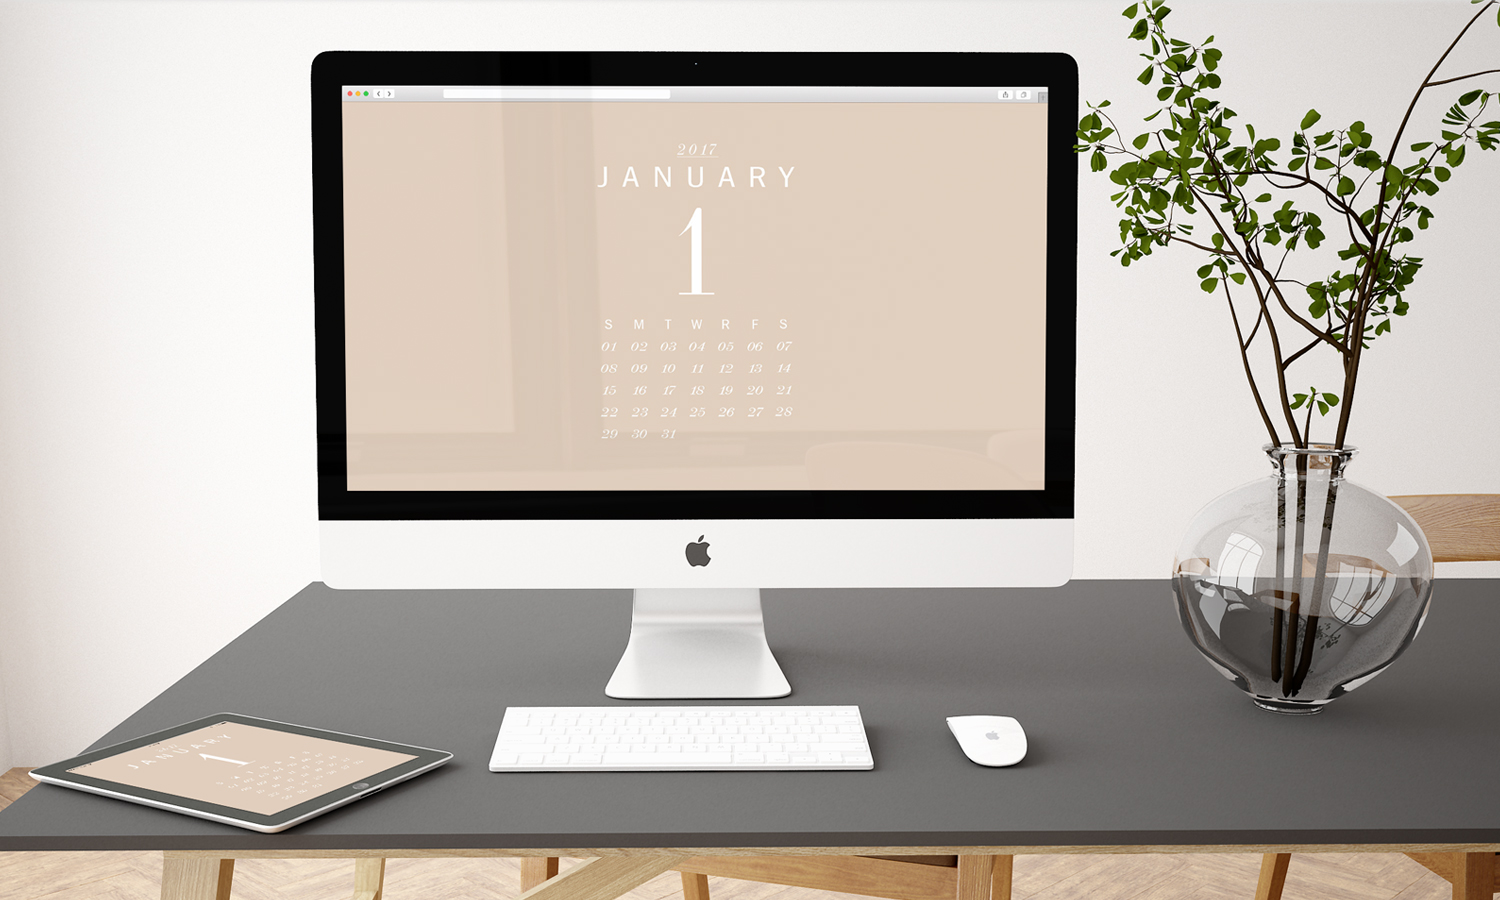 Styled-Mockup-with-free-downloadable-2017-calendar-wallpaper-background.jpg